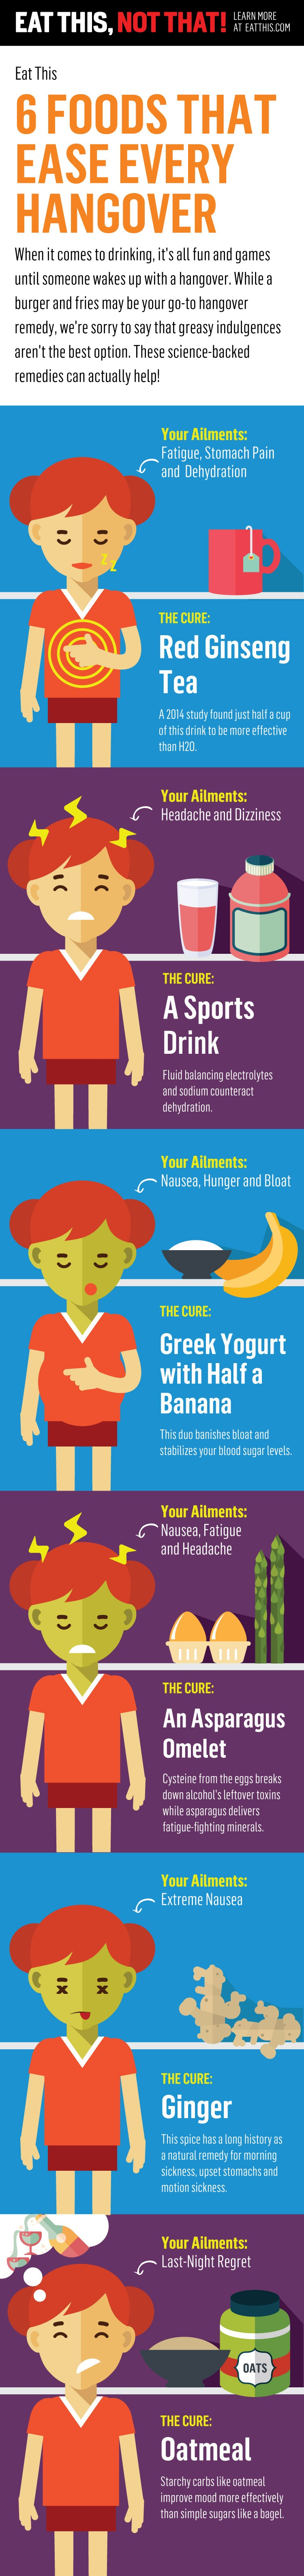 6 foods that ease every hangover [infographic] | pinterest | cure